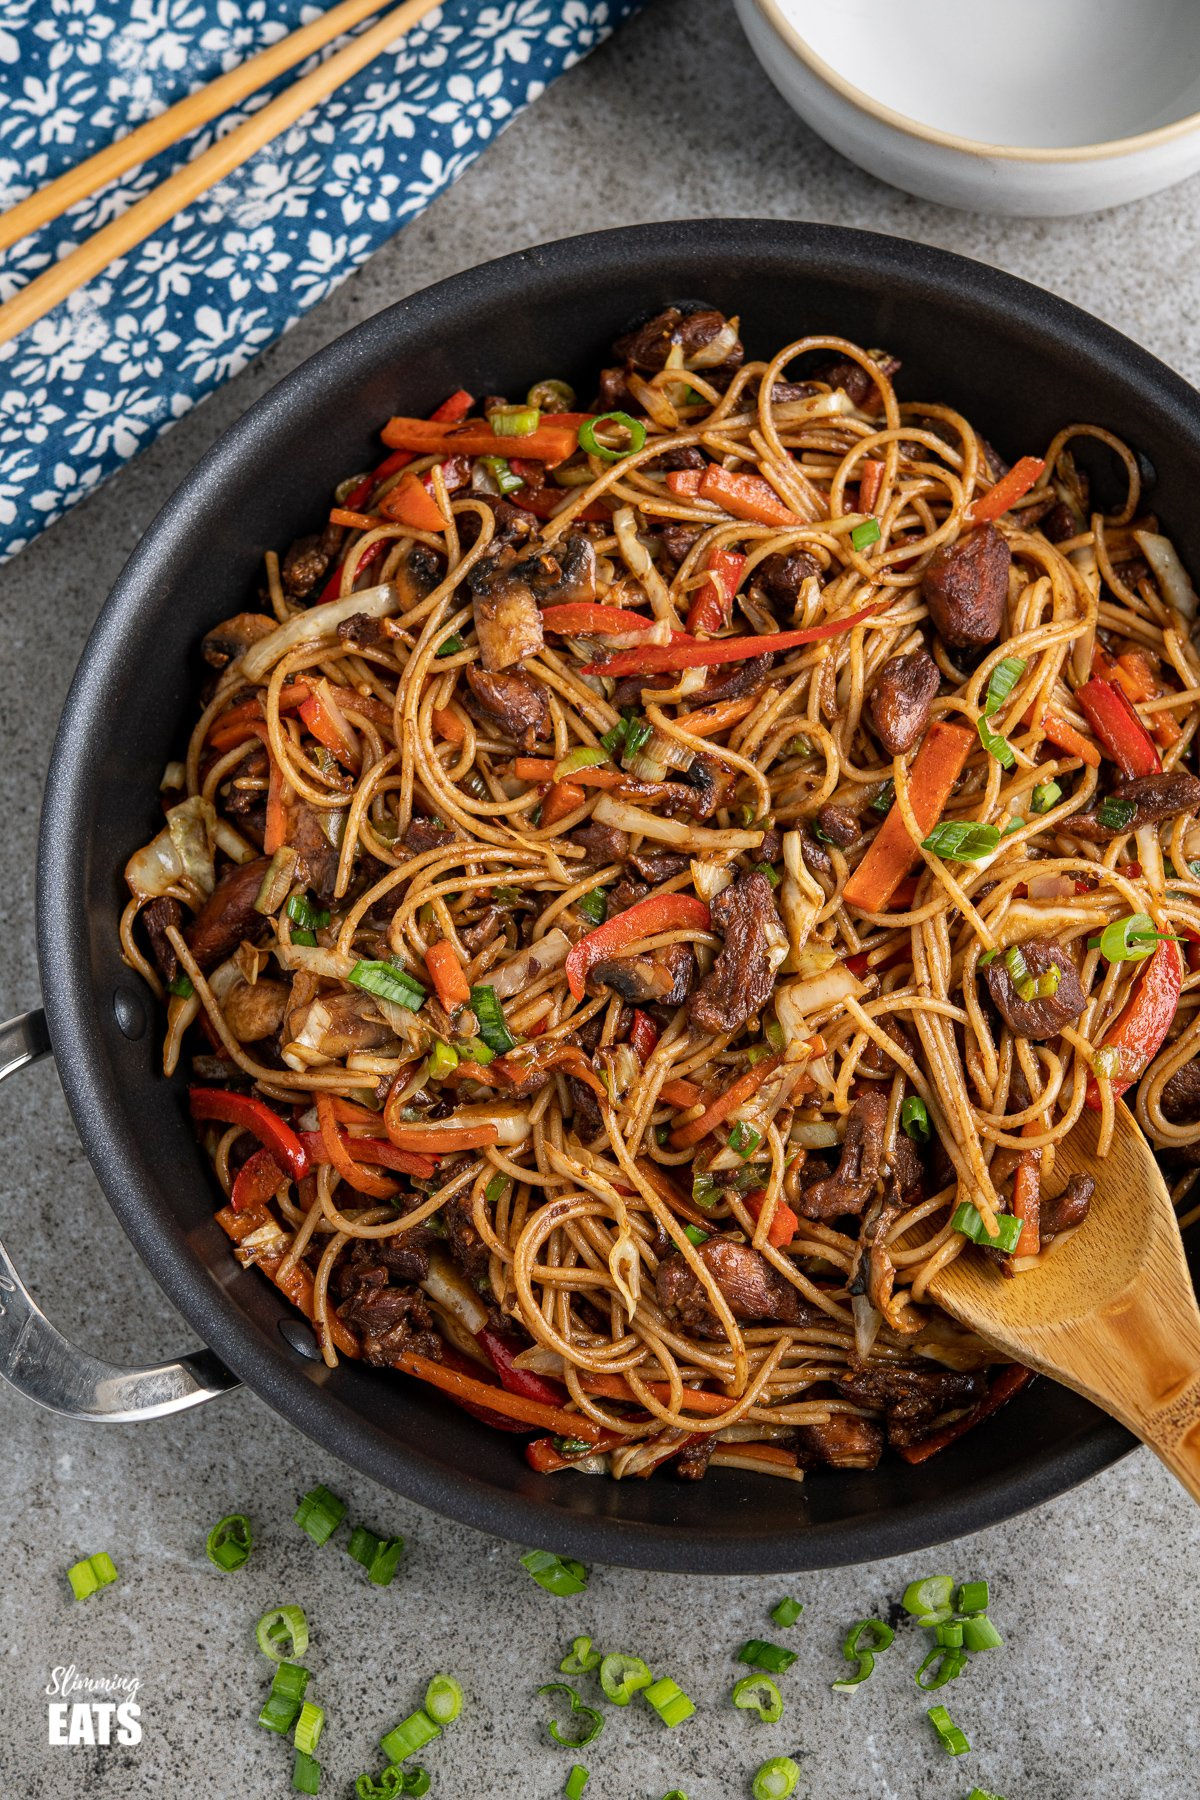 chicken with noodles and vegetables in a black frying pan with scattered spring onions